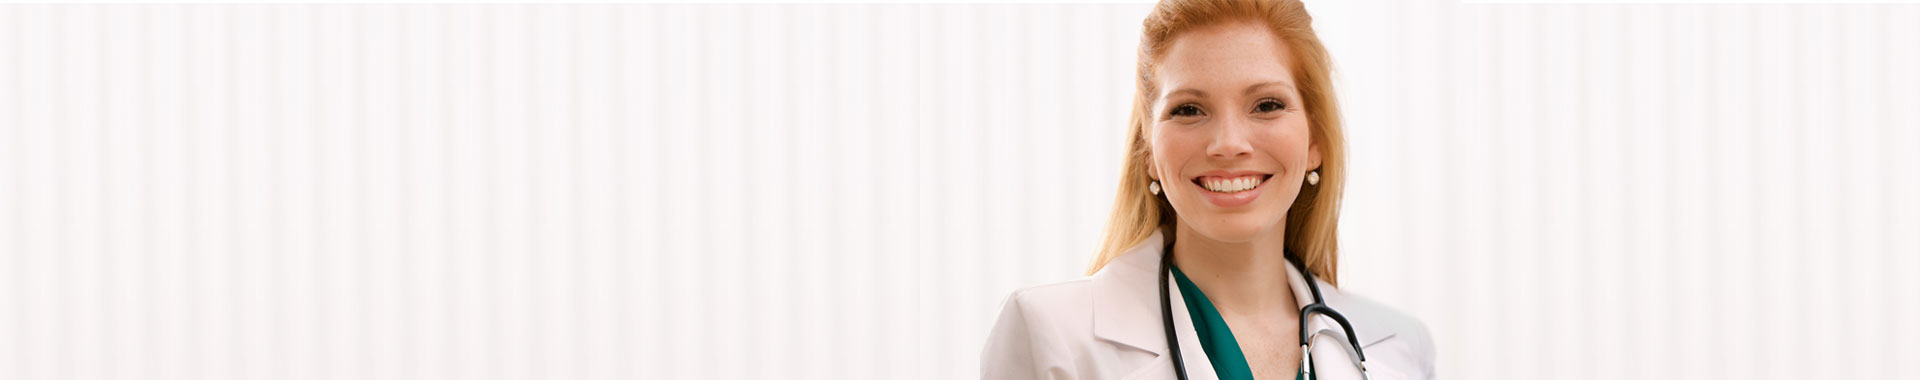 Woman doctor in a lab coat